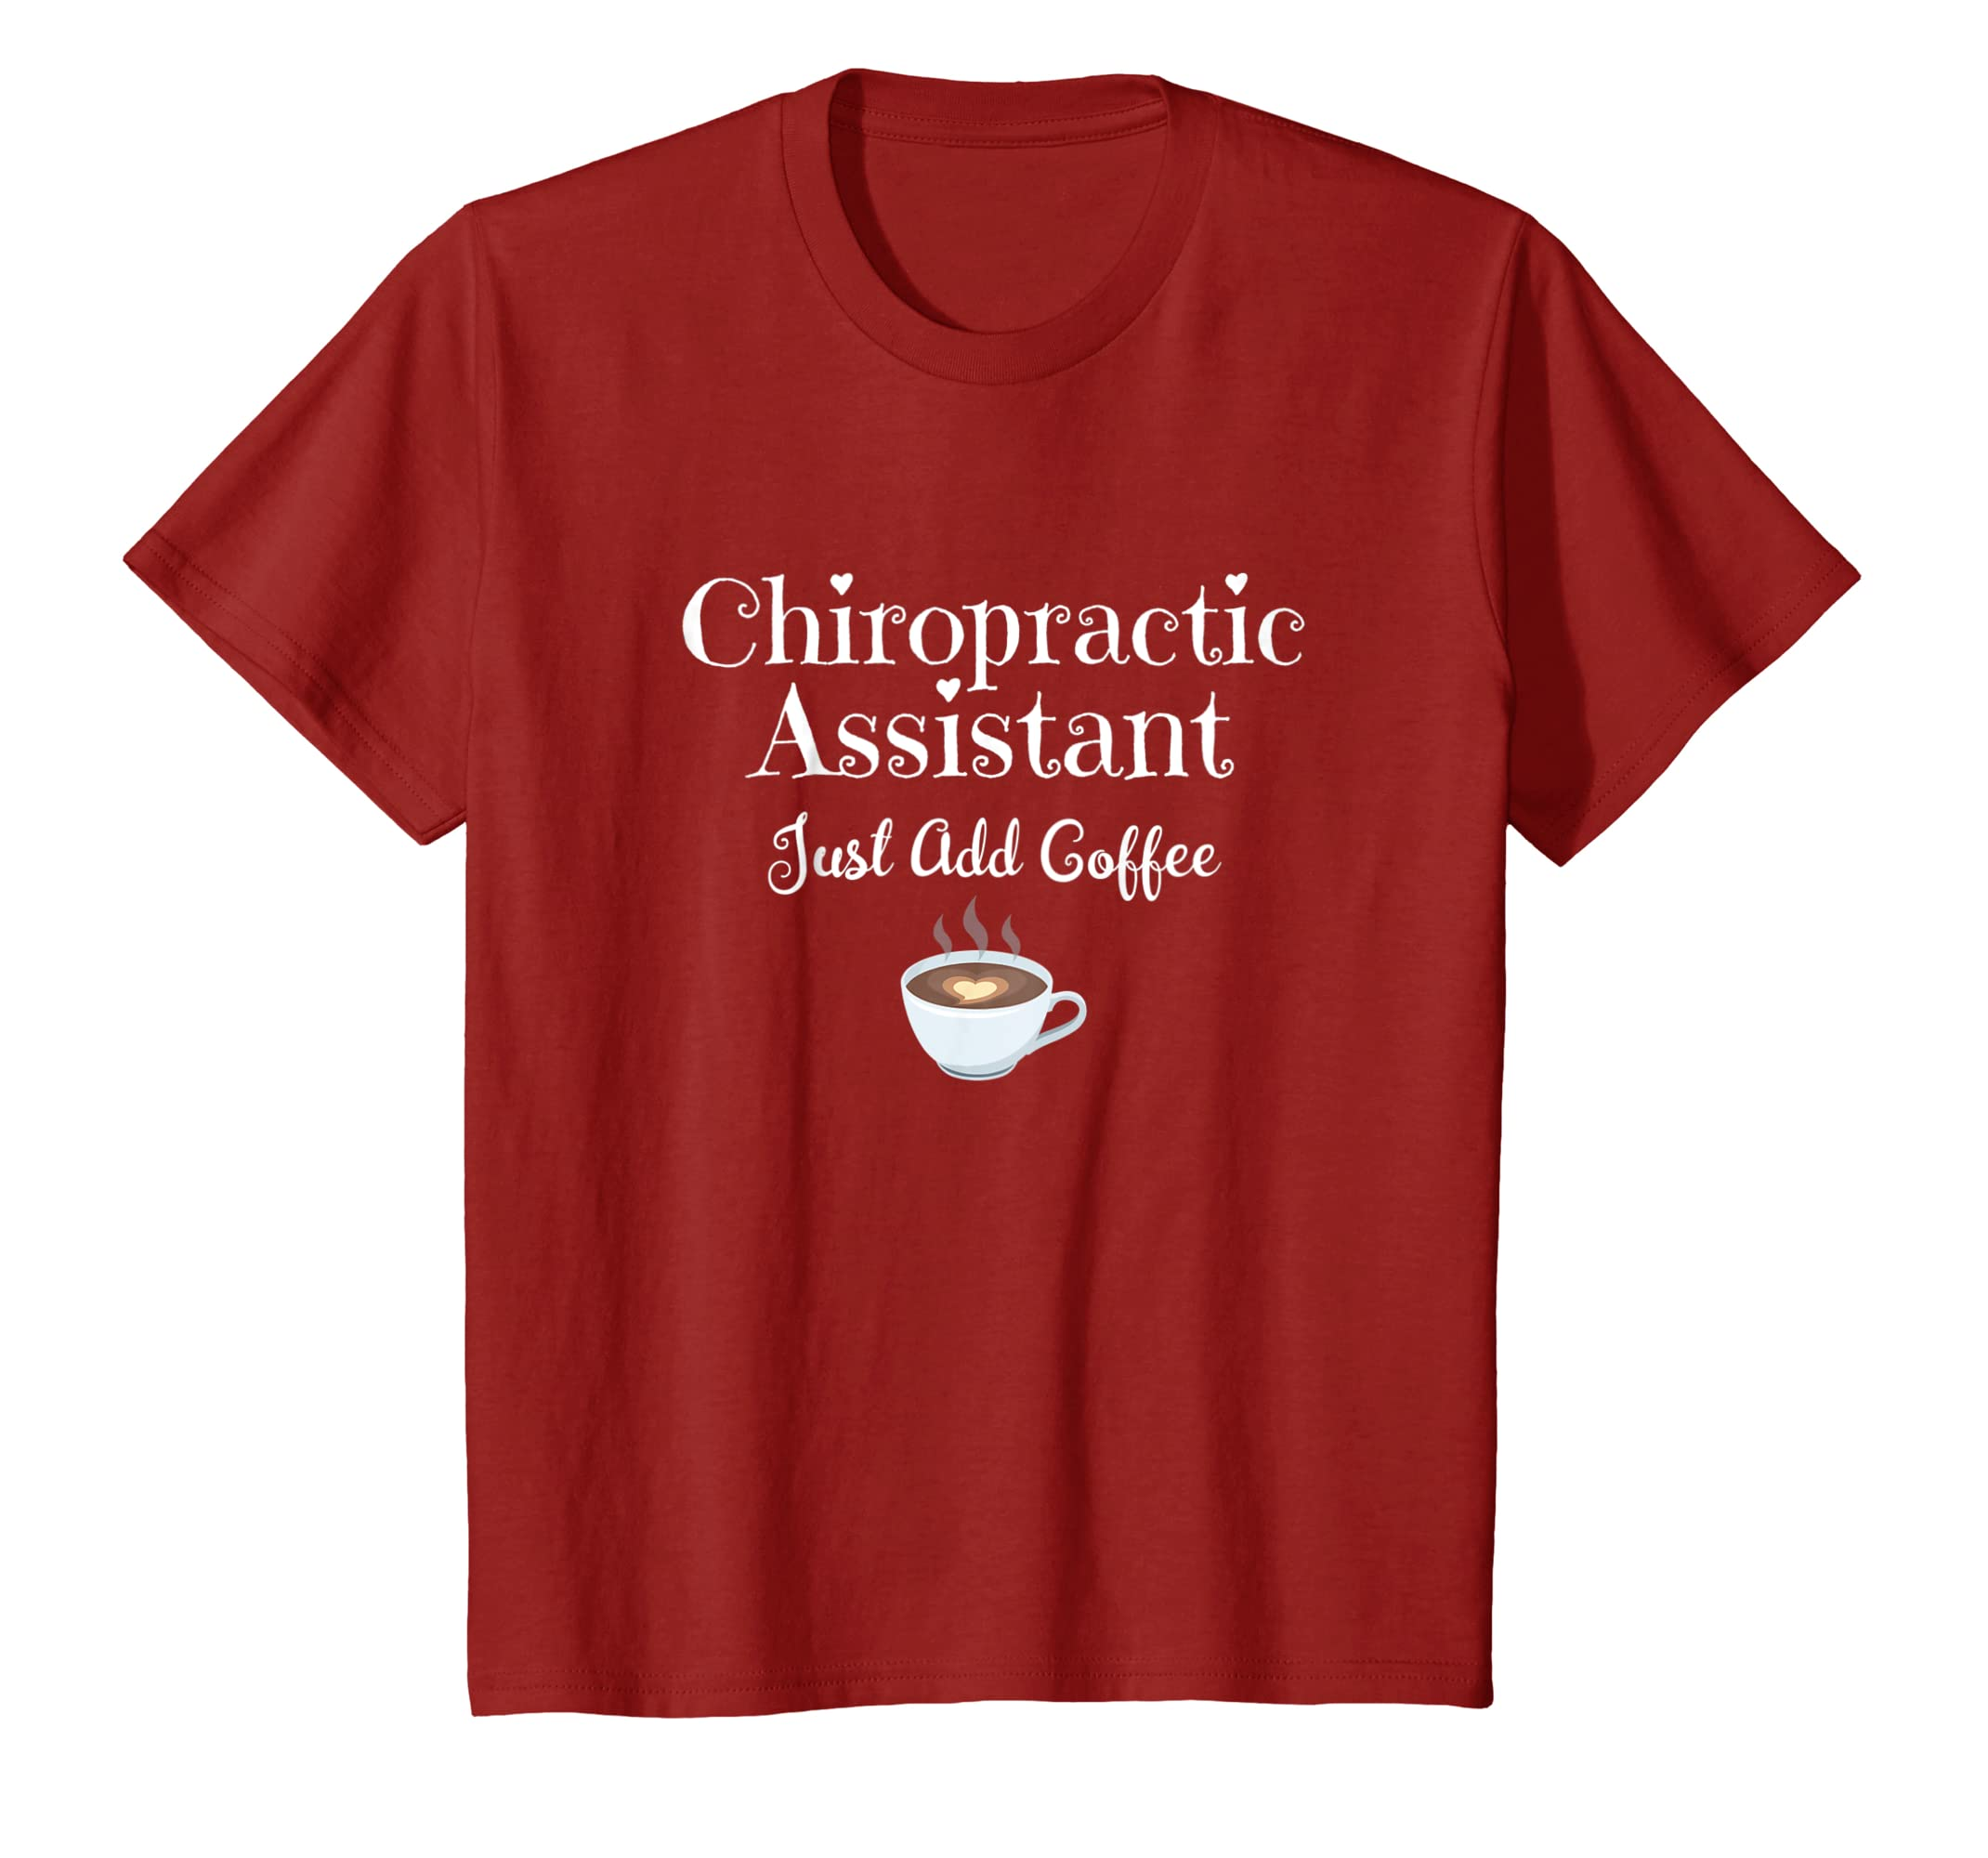 c6f05007 Amazon.com: Womens Medical Shirt Chiropractic Assistant Just Add ...